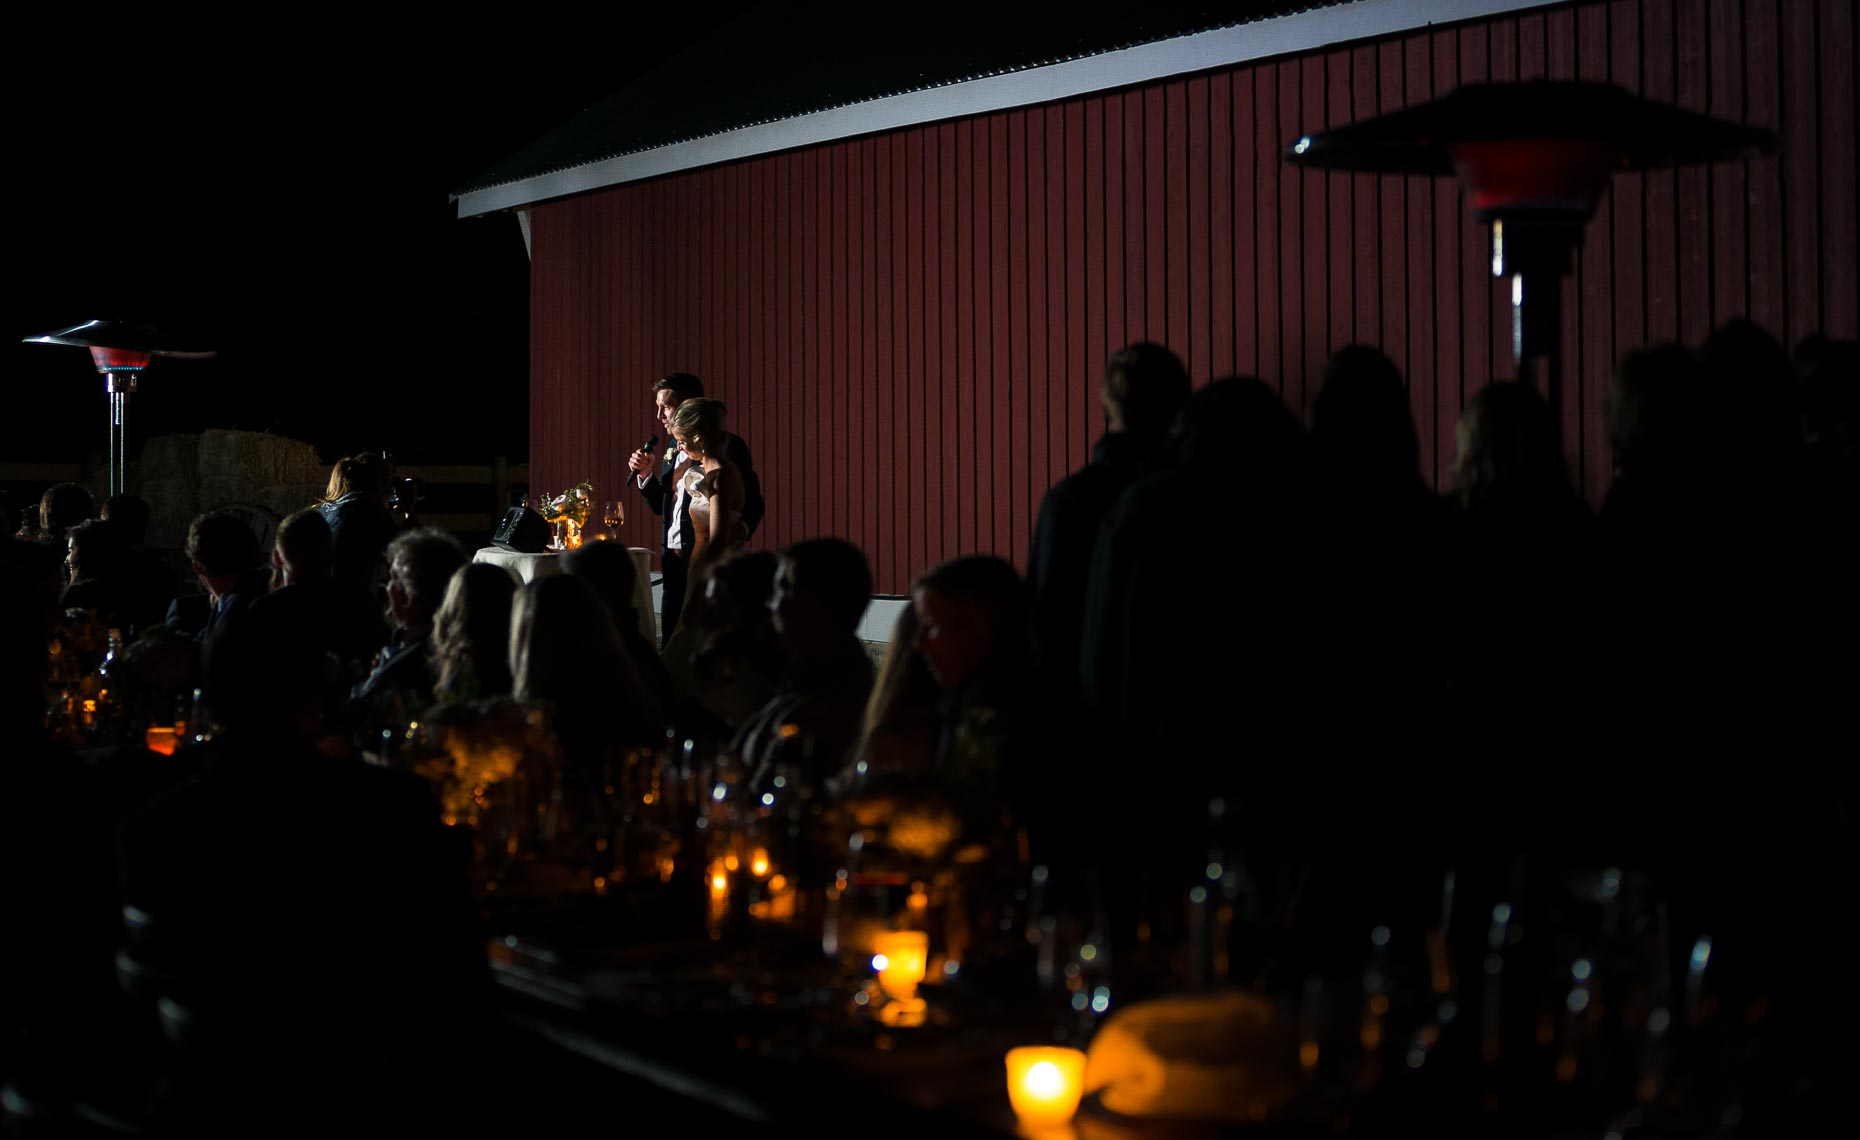 Candle light wedding reception speeches after dark near Whistler, BC